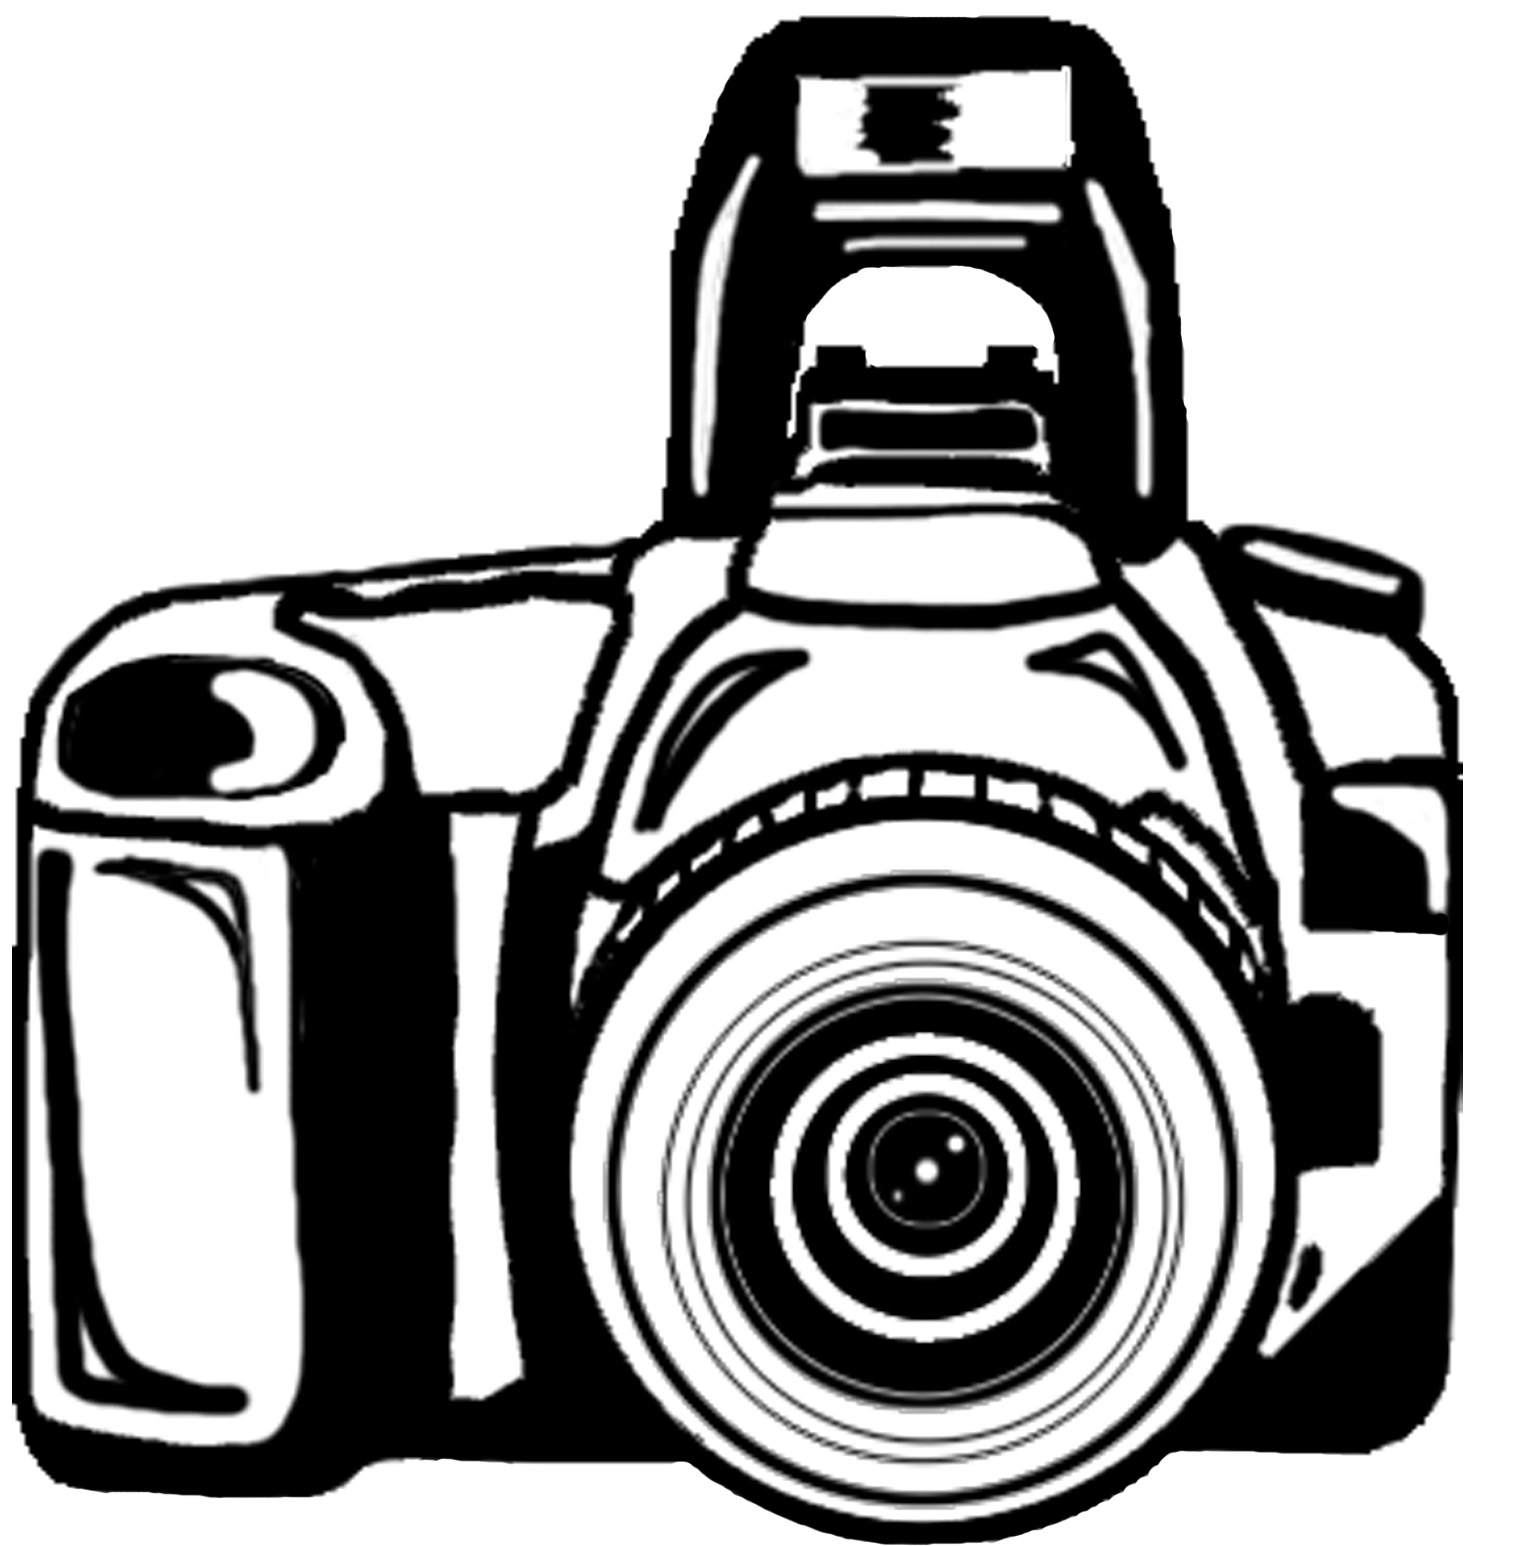 Cute Camera Clipart | Clipart Panda - Free Clipart Images